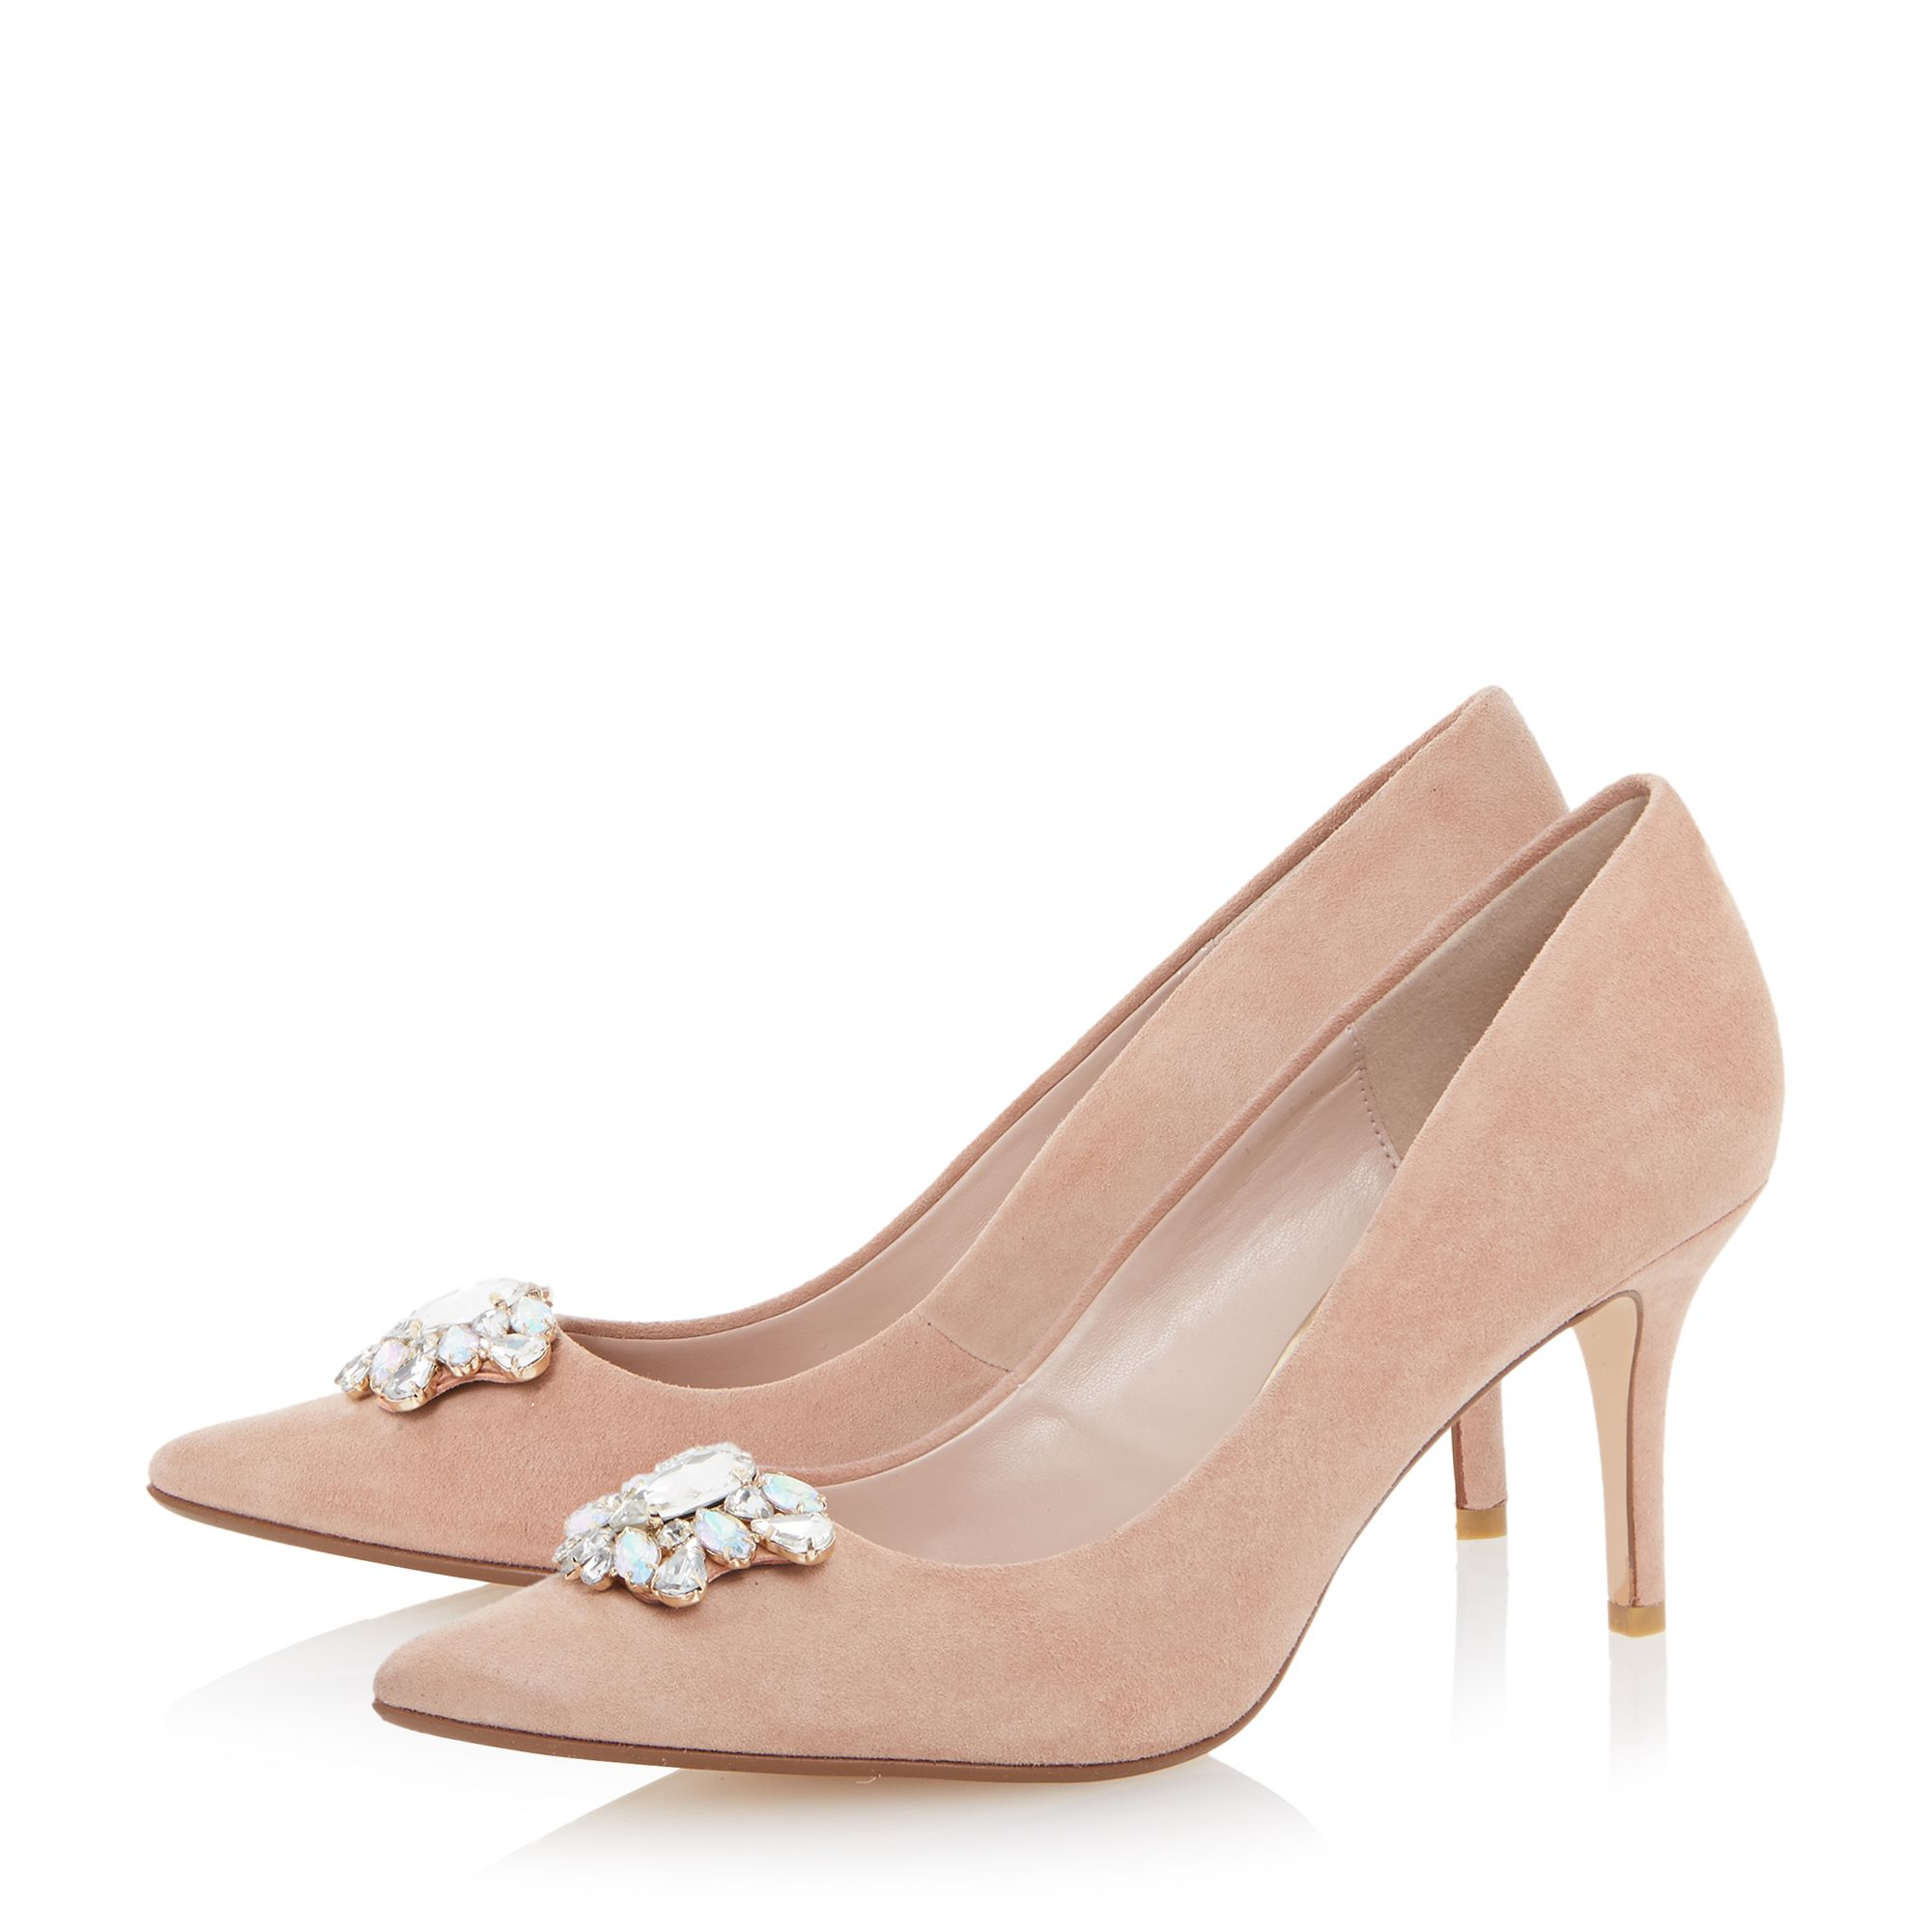 Lyst - Dune Belles Jewel Trim Mid Heel Court Shoes in Pink 40821b57deff